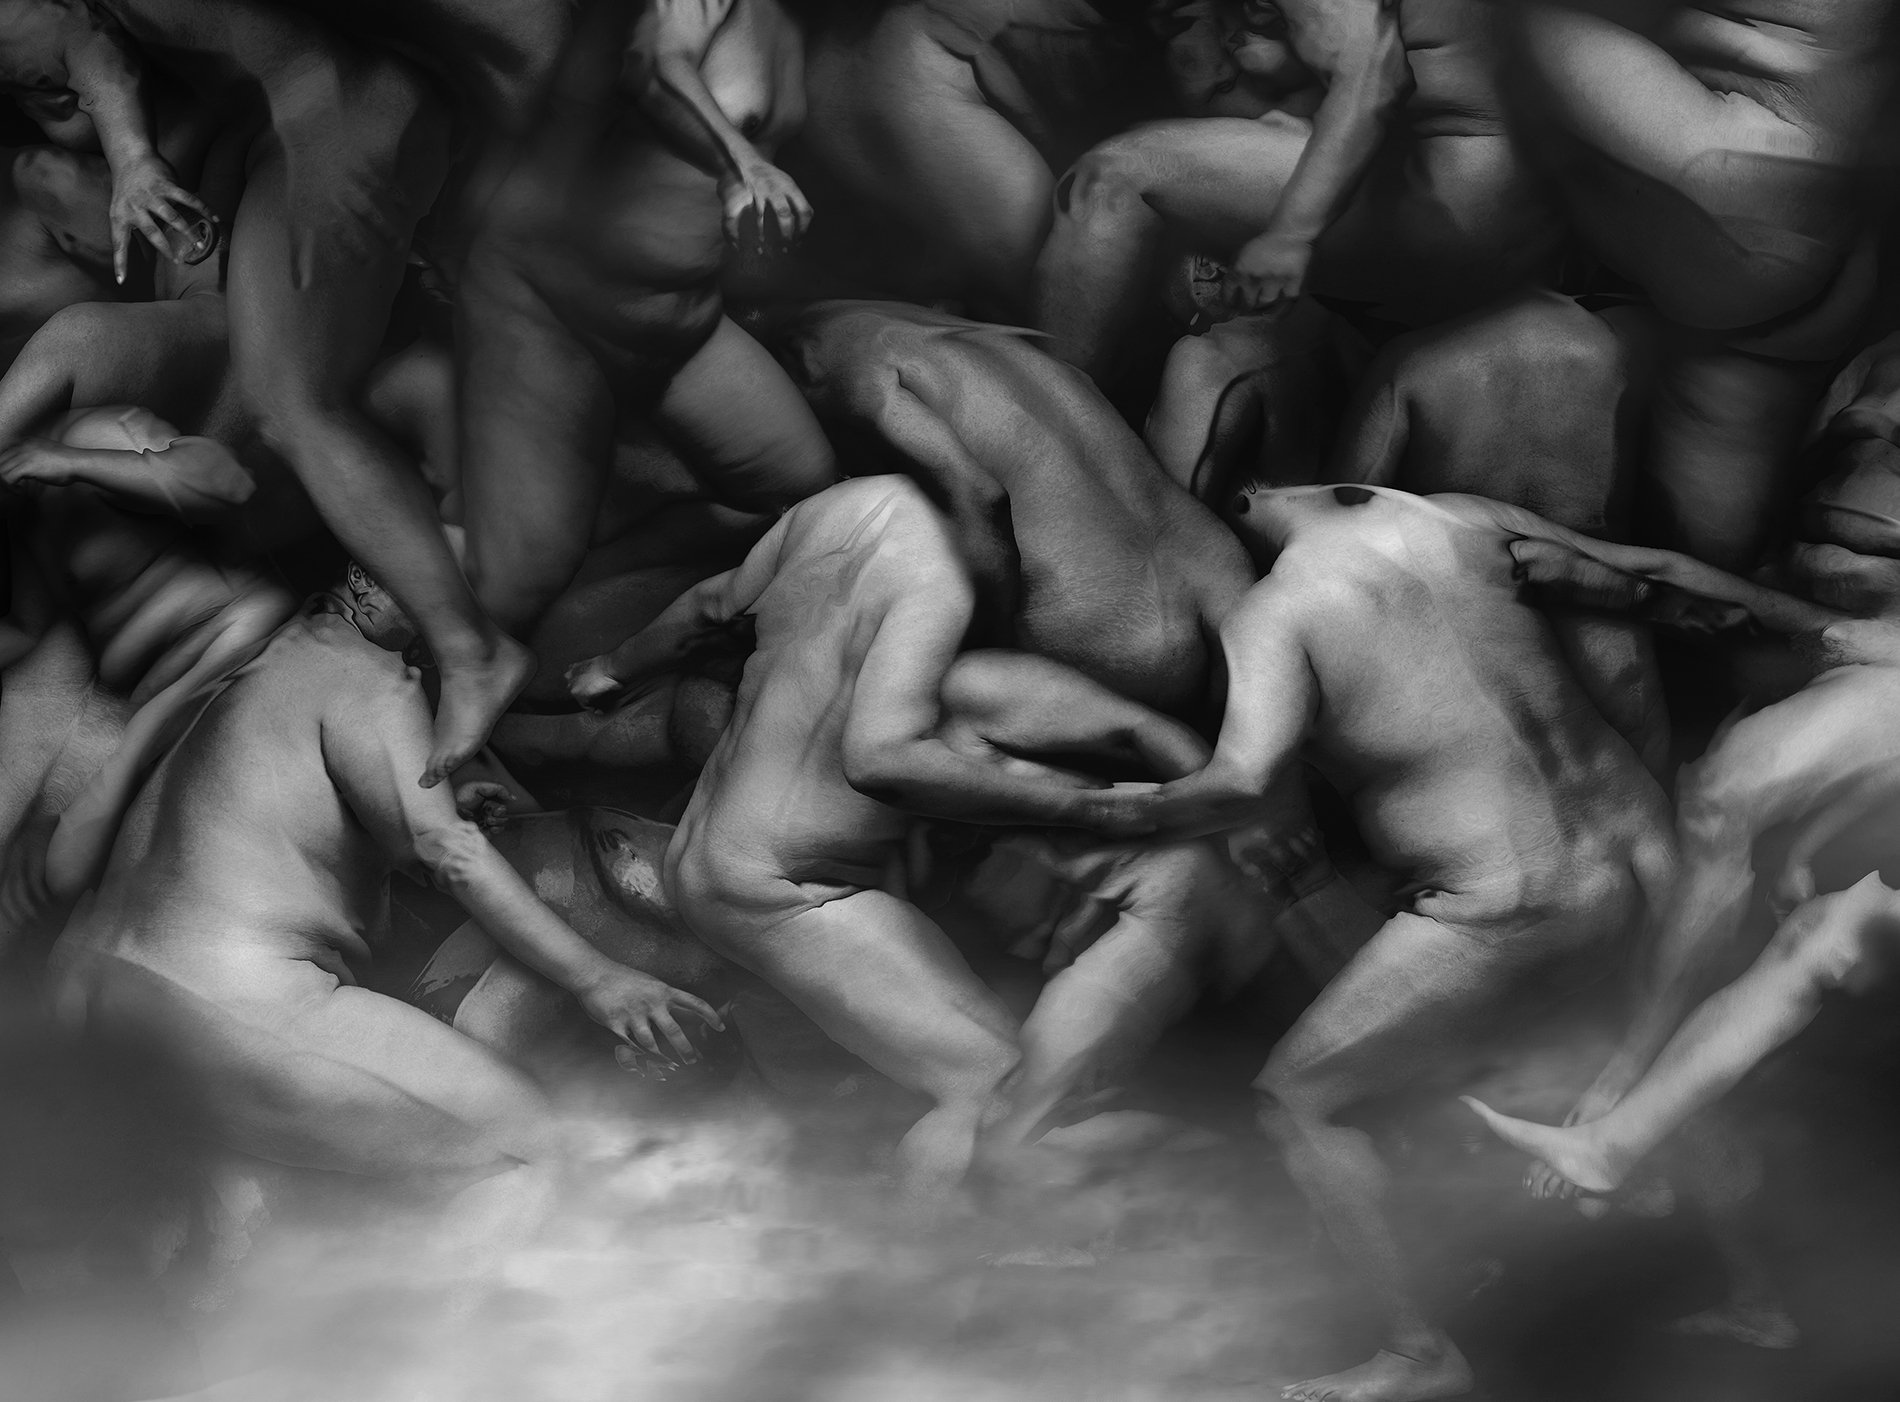 black and white photography of human bodies on a dark background by Korean Photographer Dongwook Lee